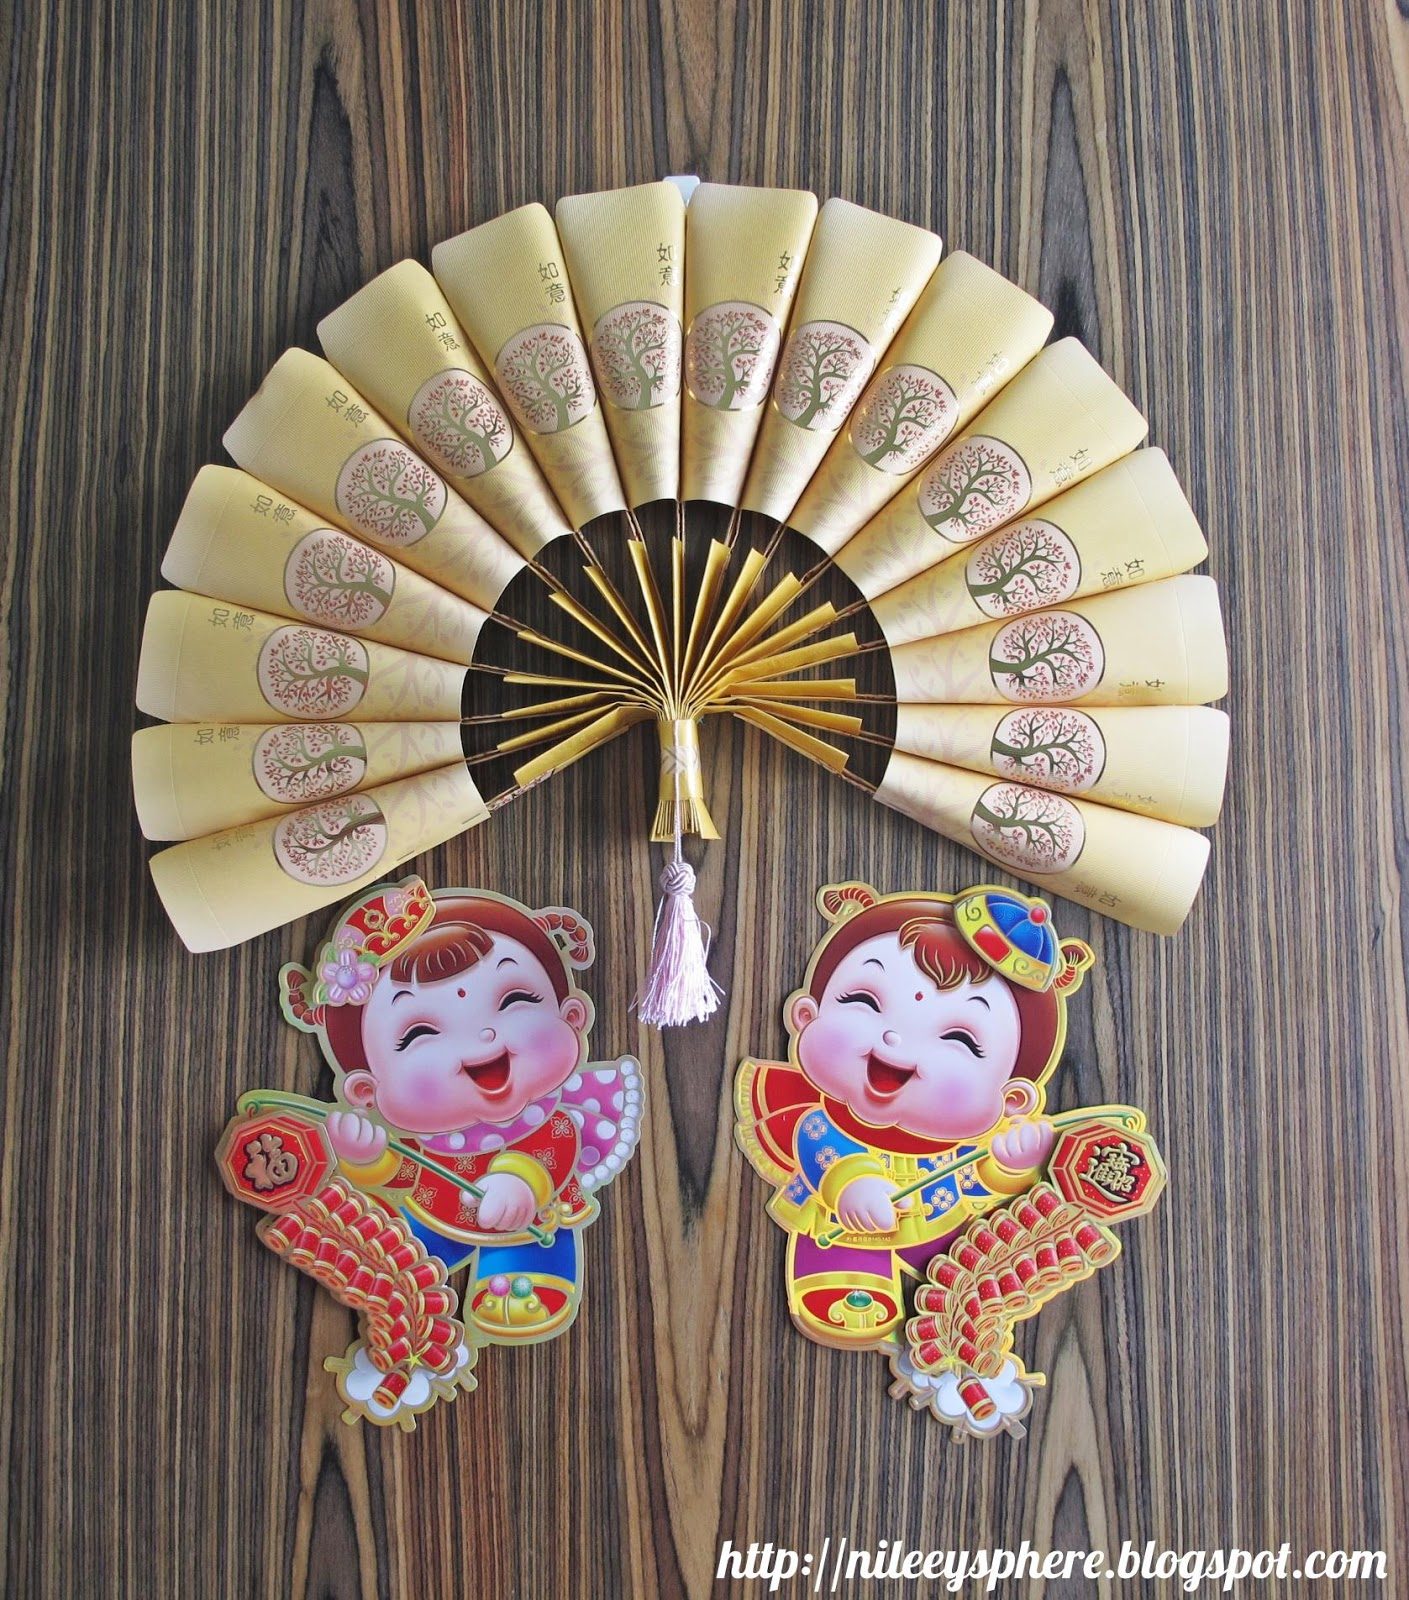 Nileey 39 s sphere ang pow packet fan ornament for Ang pow packet decoration